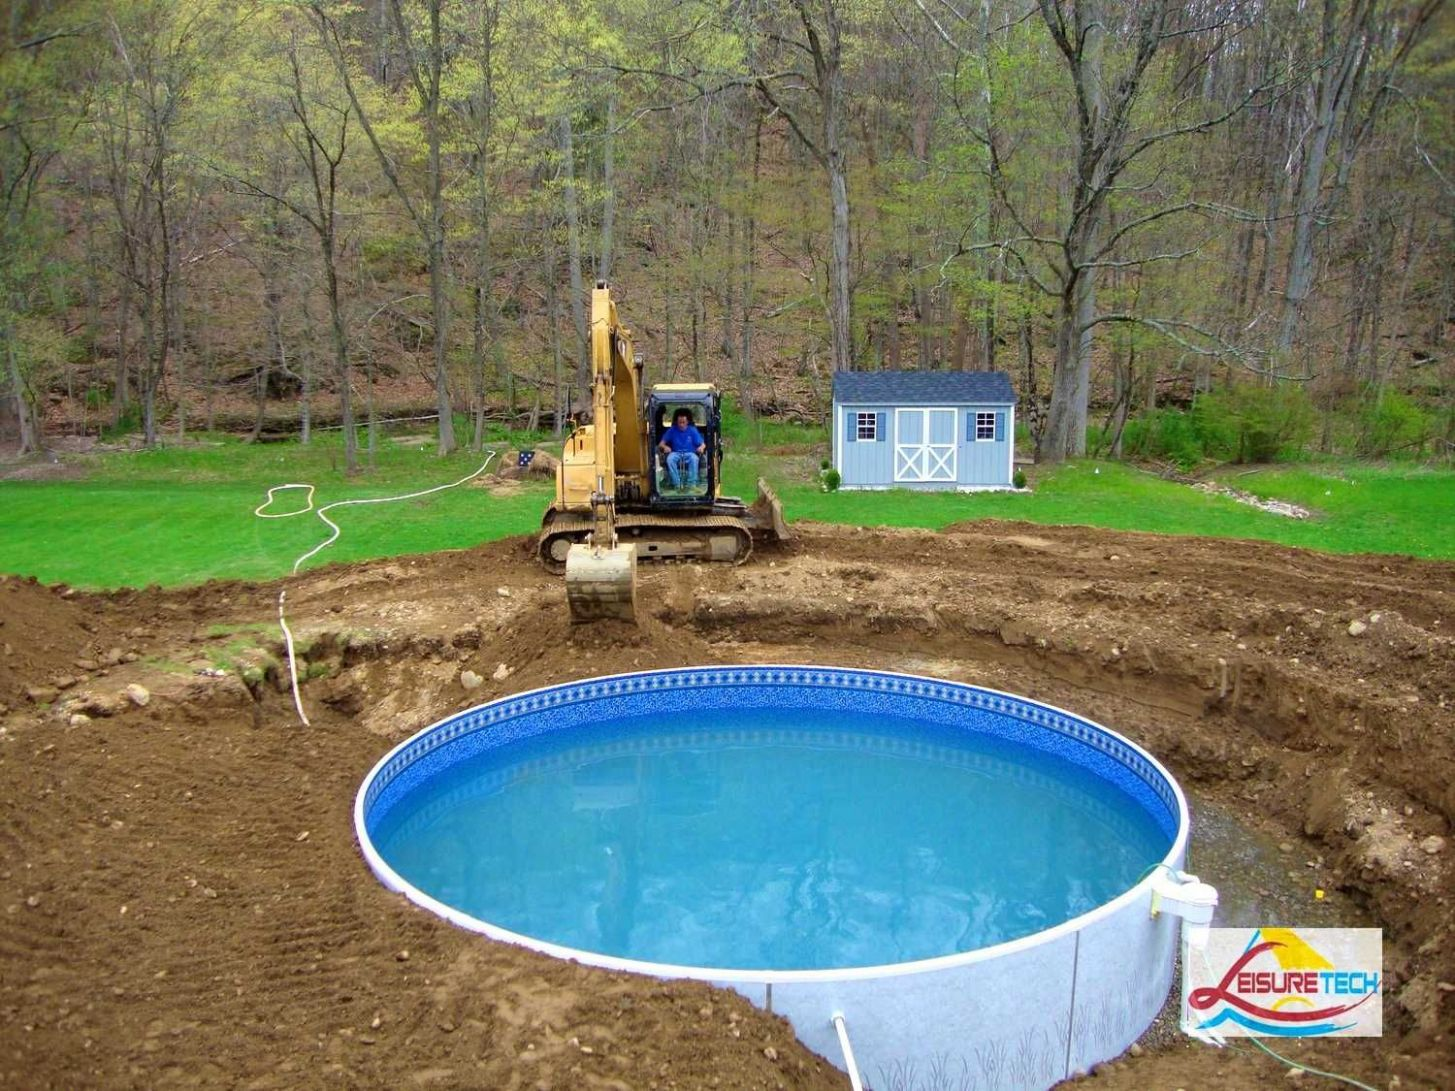 Above Ground Pool Landscaping Ideas on a Budget | Above ground ...